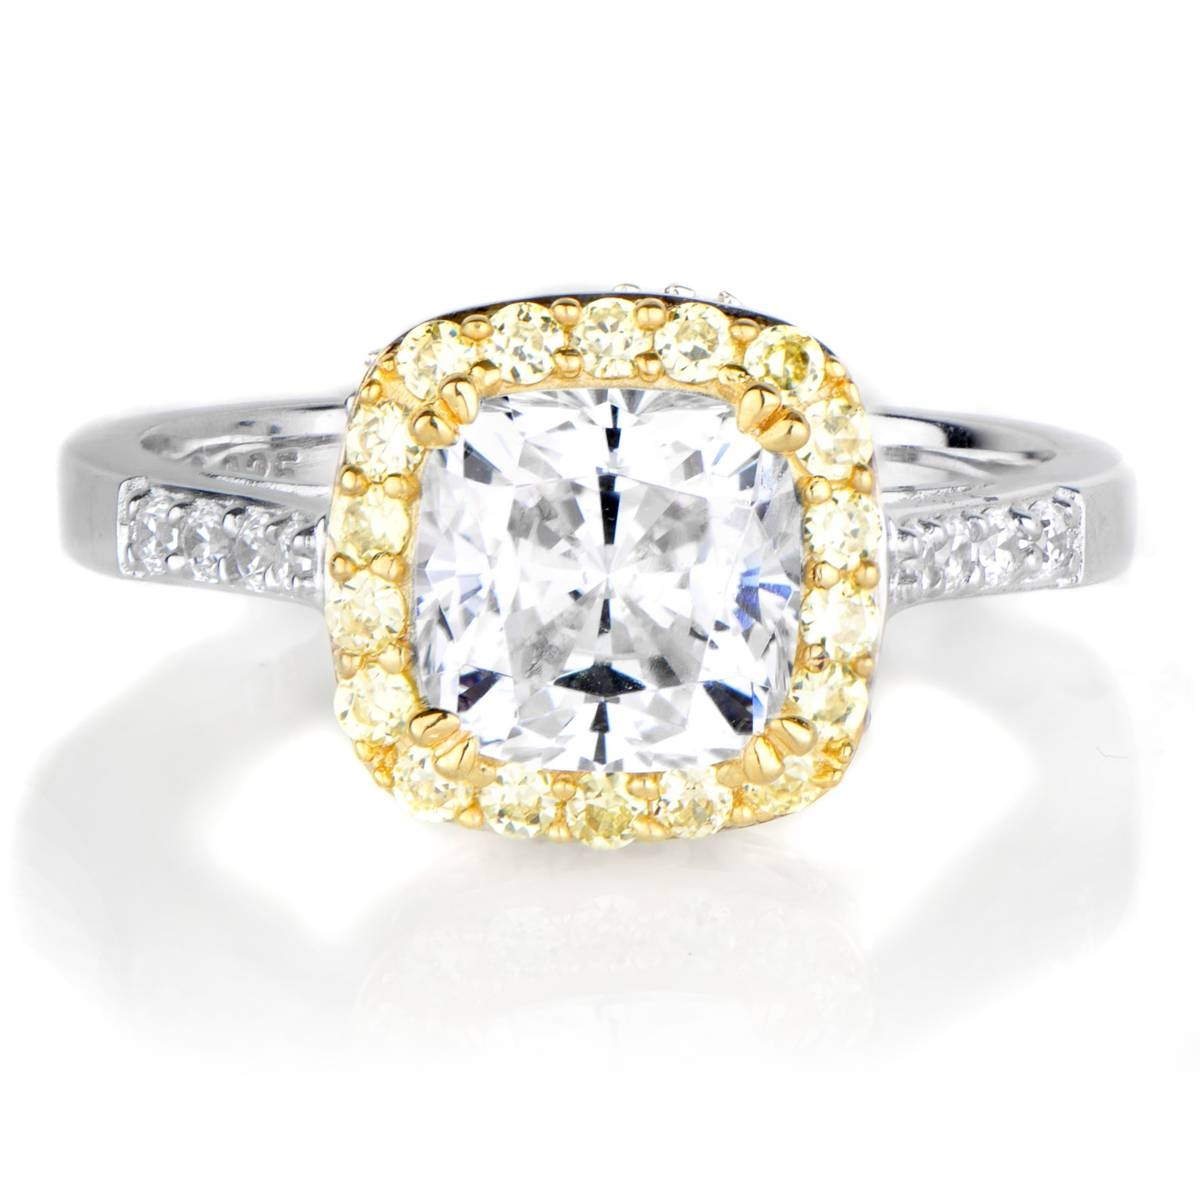 Cubic Zirconia Halo Rings Emitations Regarding November Birthstone Engagement Rings (View 4 of 15)